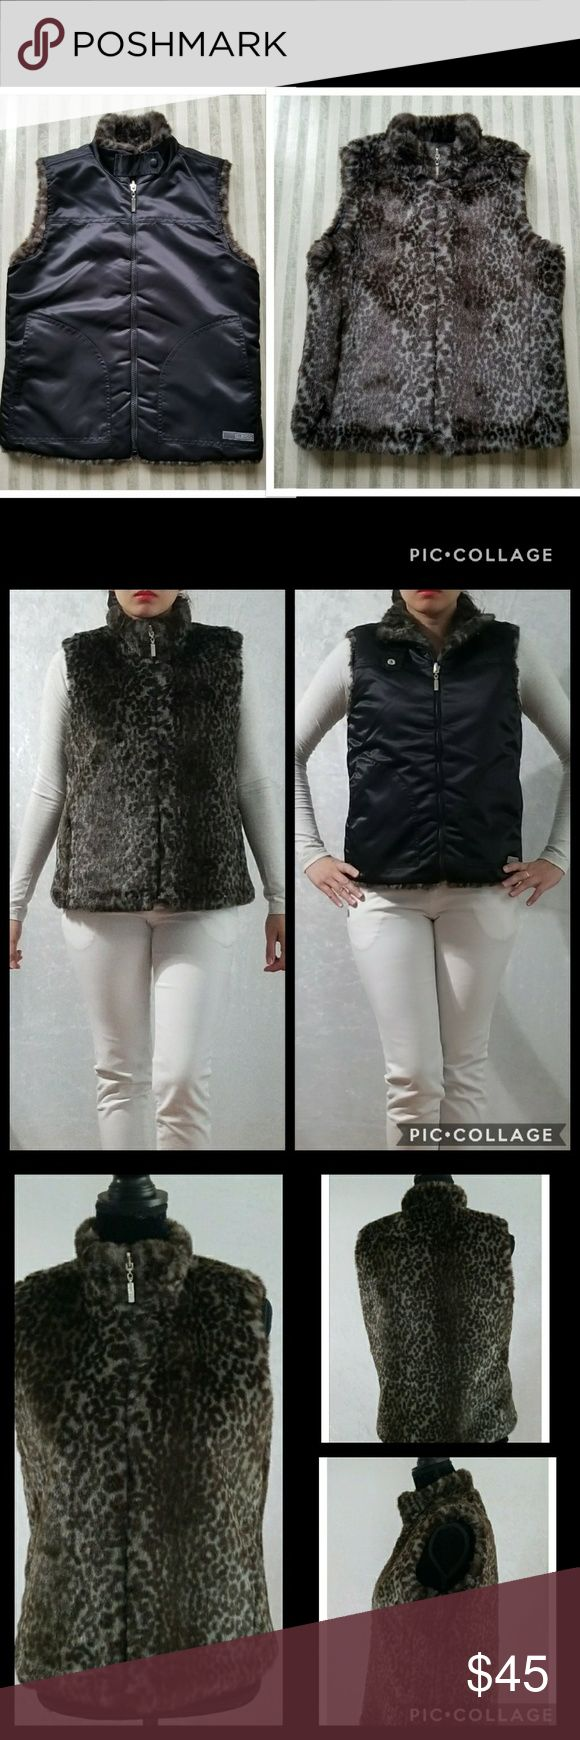 EUC GUESS Faux-fur Reversible Vest Pre-loved. This faux-fur animal print vest is in EXCELLENT Used CONDITION and is double sided perfection. TWO VEST IN ONE! One side is amazingly soft faux-fur and the other side is a smooth sleek black. The collar snaps, zipper closure abd convenient side pockets make this vest a total package. Non-smoking home. Perfect for fall and winter season. Feel free to ask. Open for reasonable offers. Guess Jackets & Coats Vests